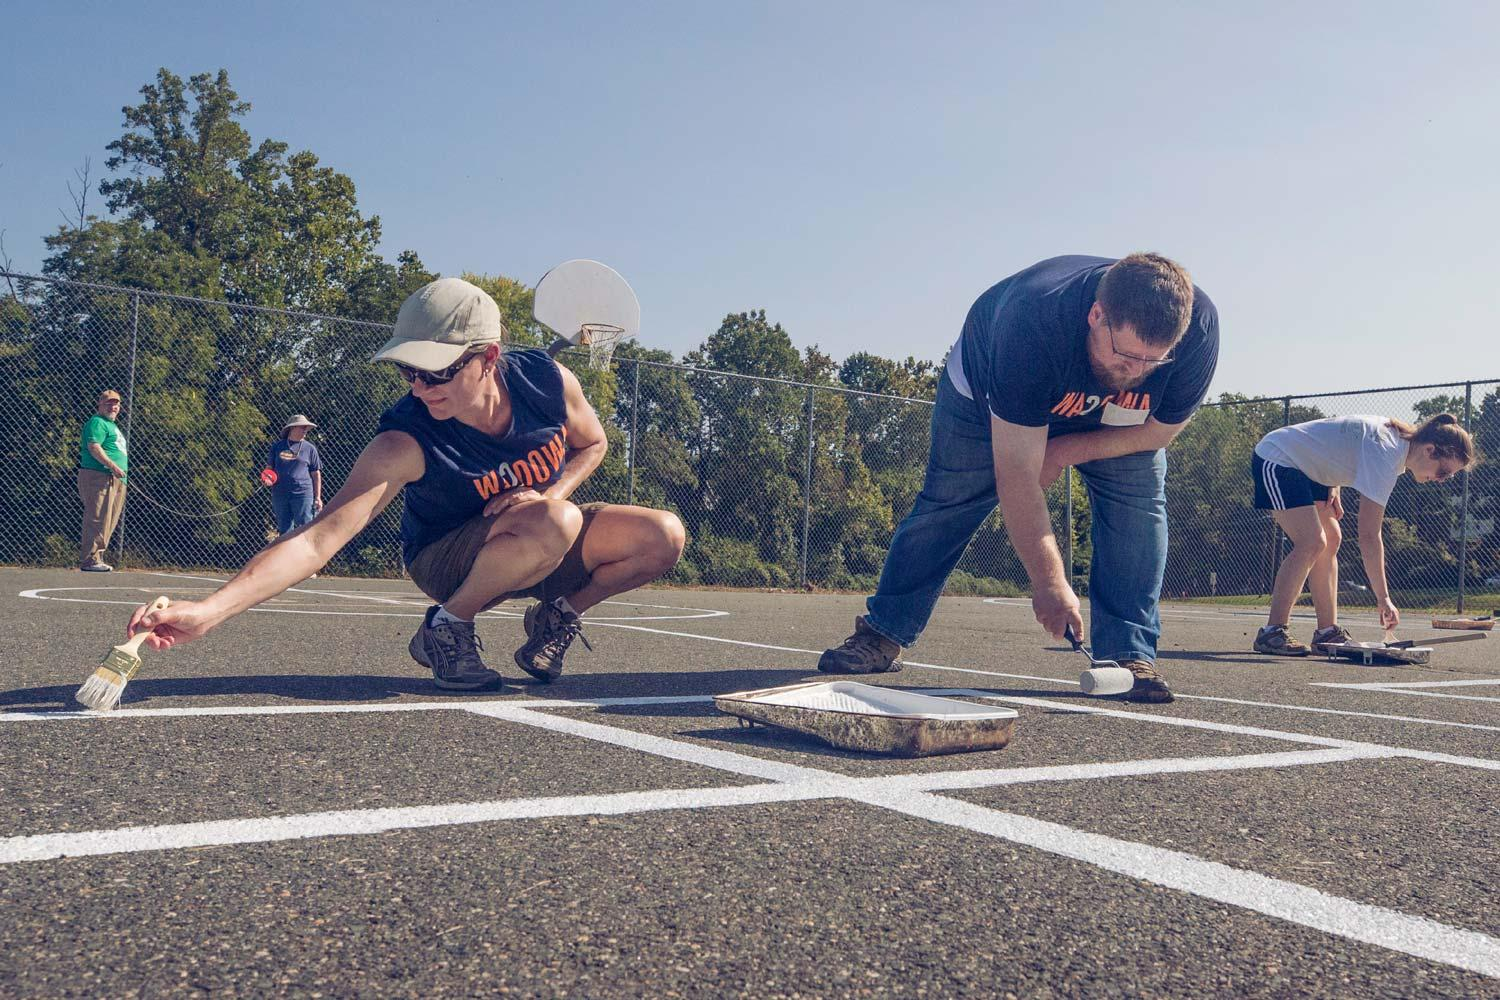 UVA employees Debbie Mincarelli and Tyler Miller paint lines on an outdoor basketball court at Burley Middle School in Charlottesville.